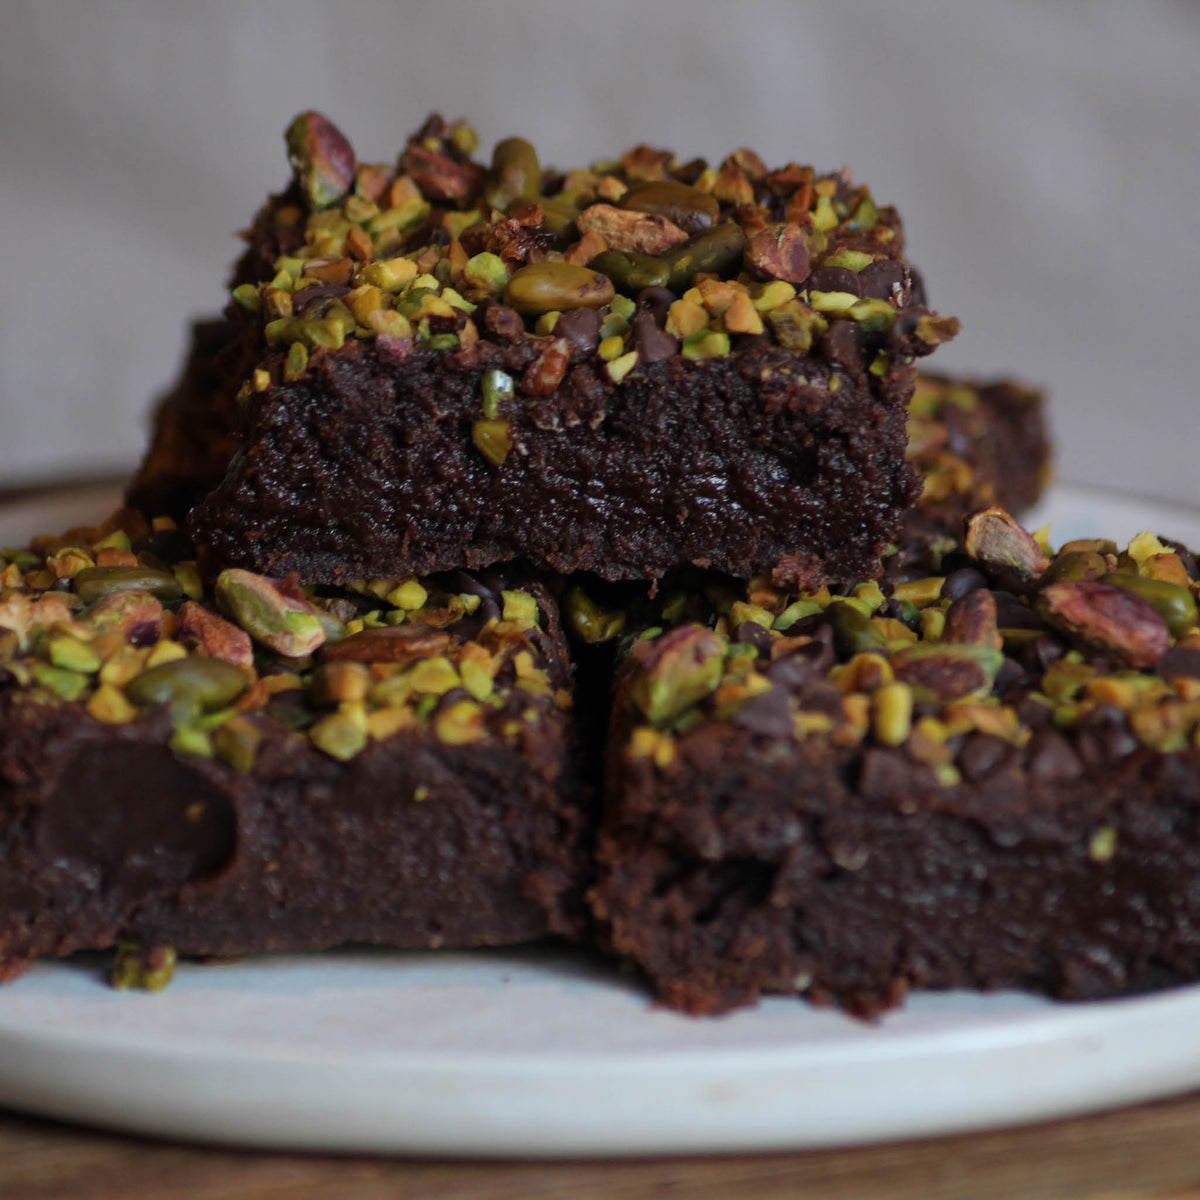 Brownie chocolat pistache / lot de 3